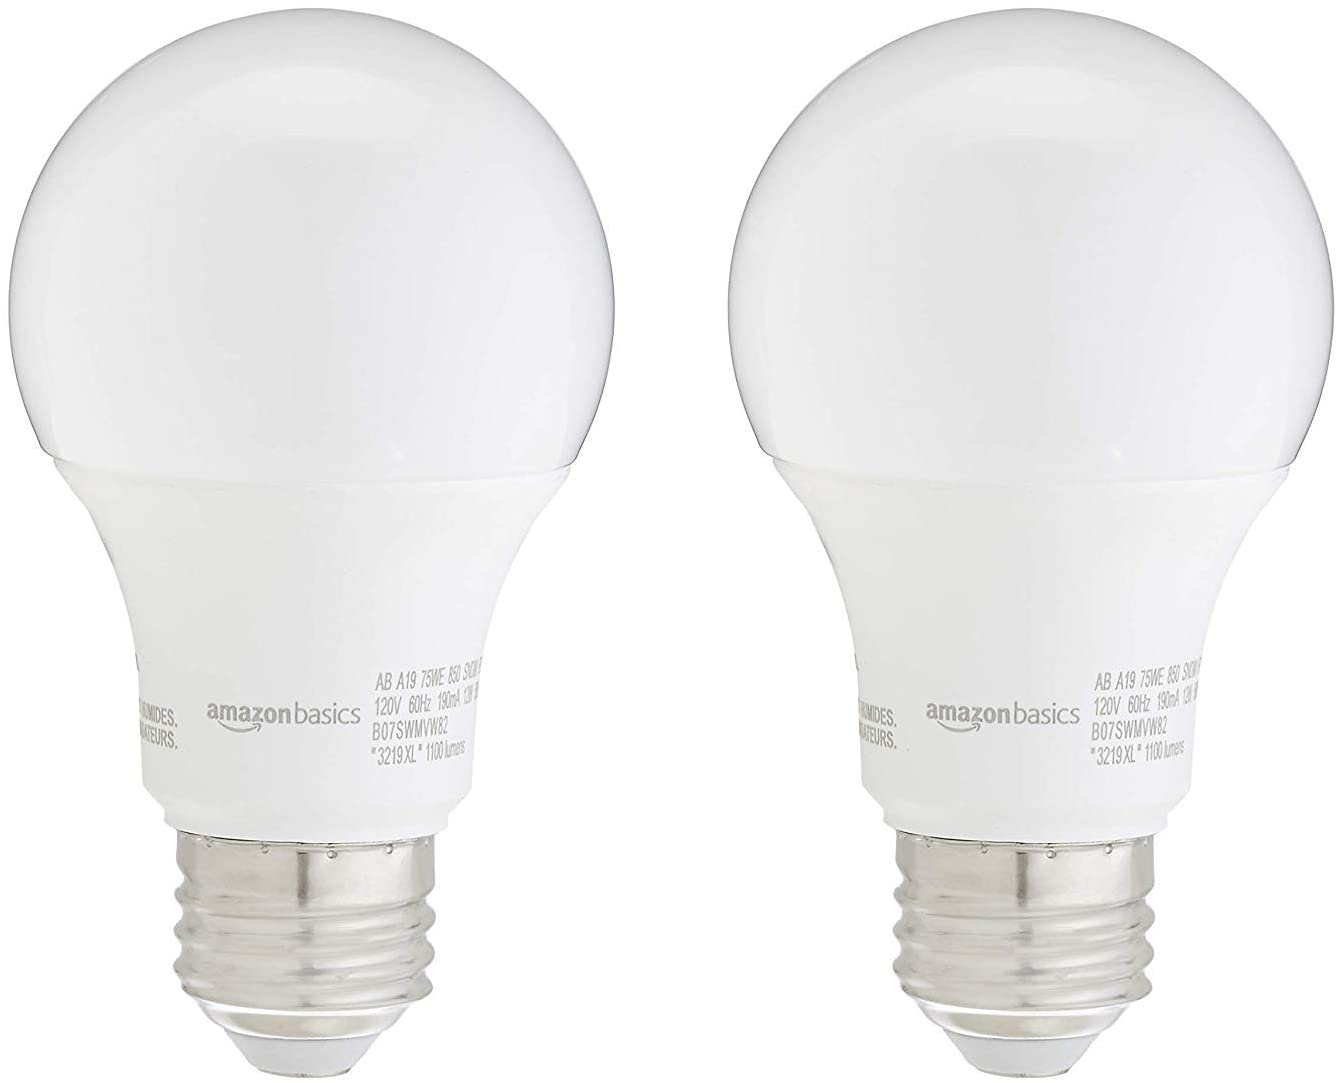 AmazonBasics 75W Equivalent, Daylight, Non-Dimmable, 10,000 Hour Lifetime, A19 LED Light Bulb | 2-Pack